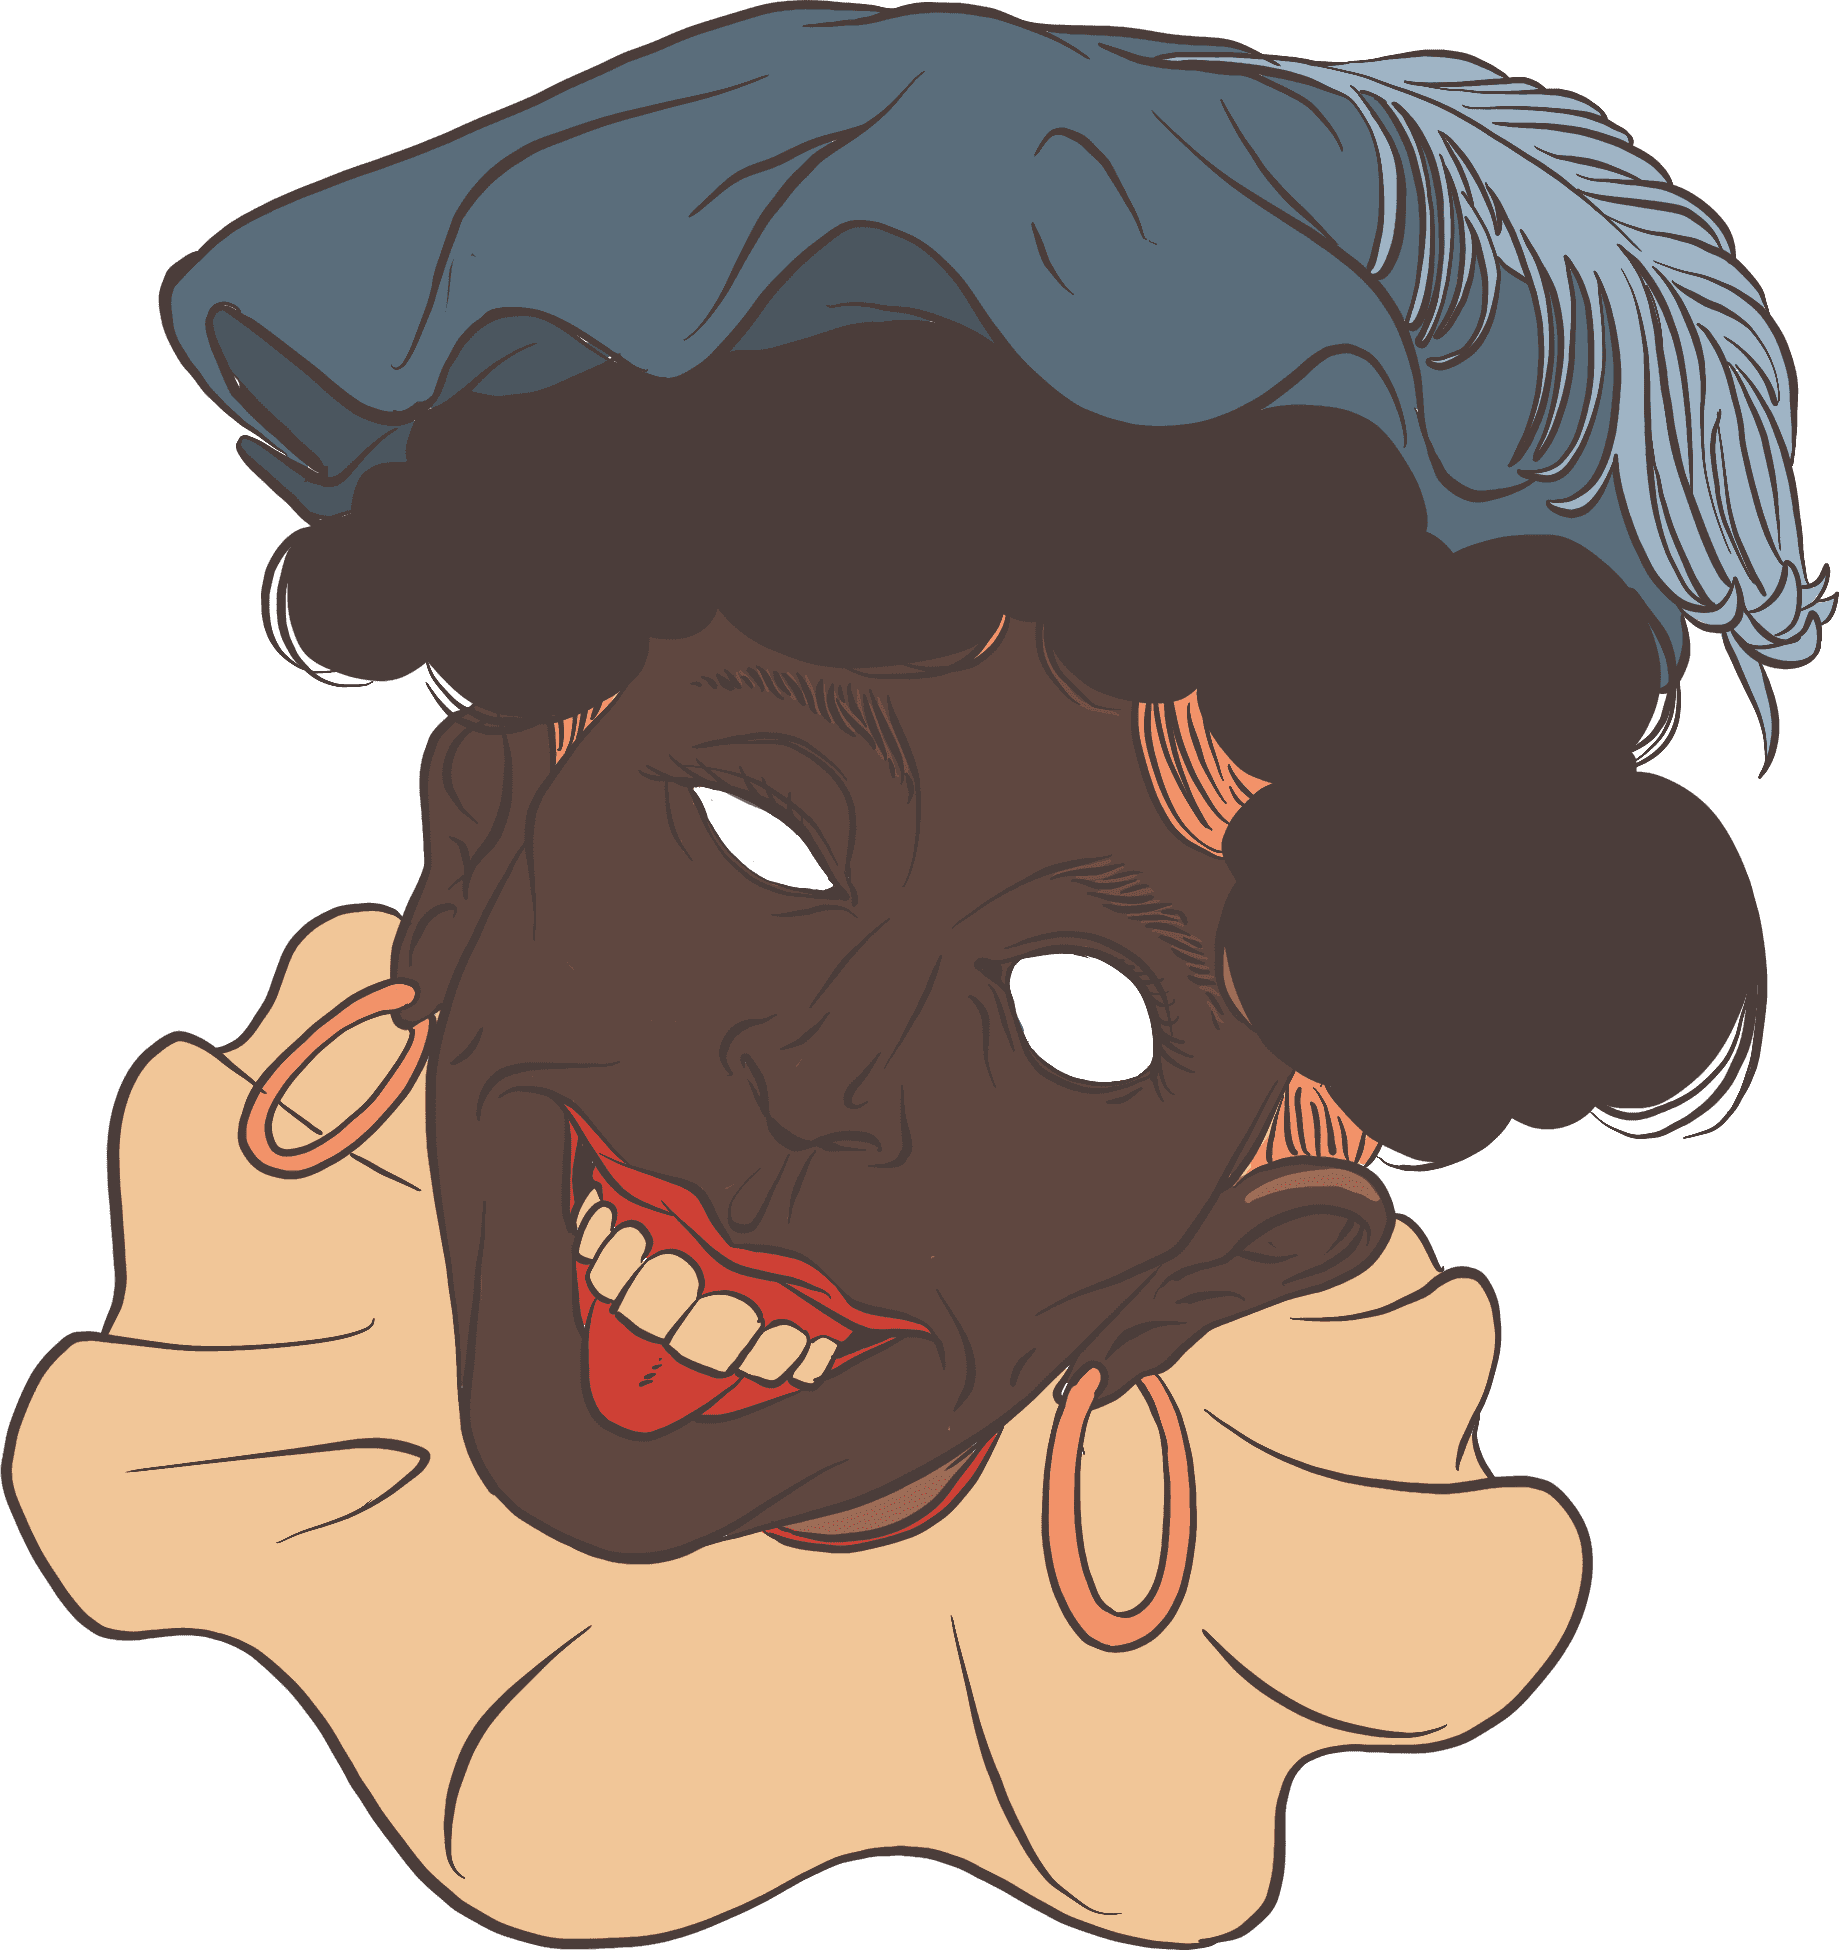 Image of some person in blackface